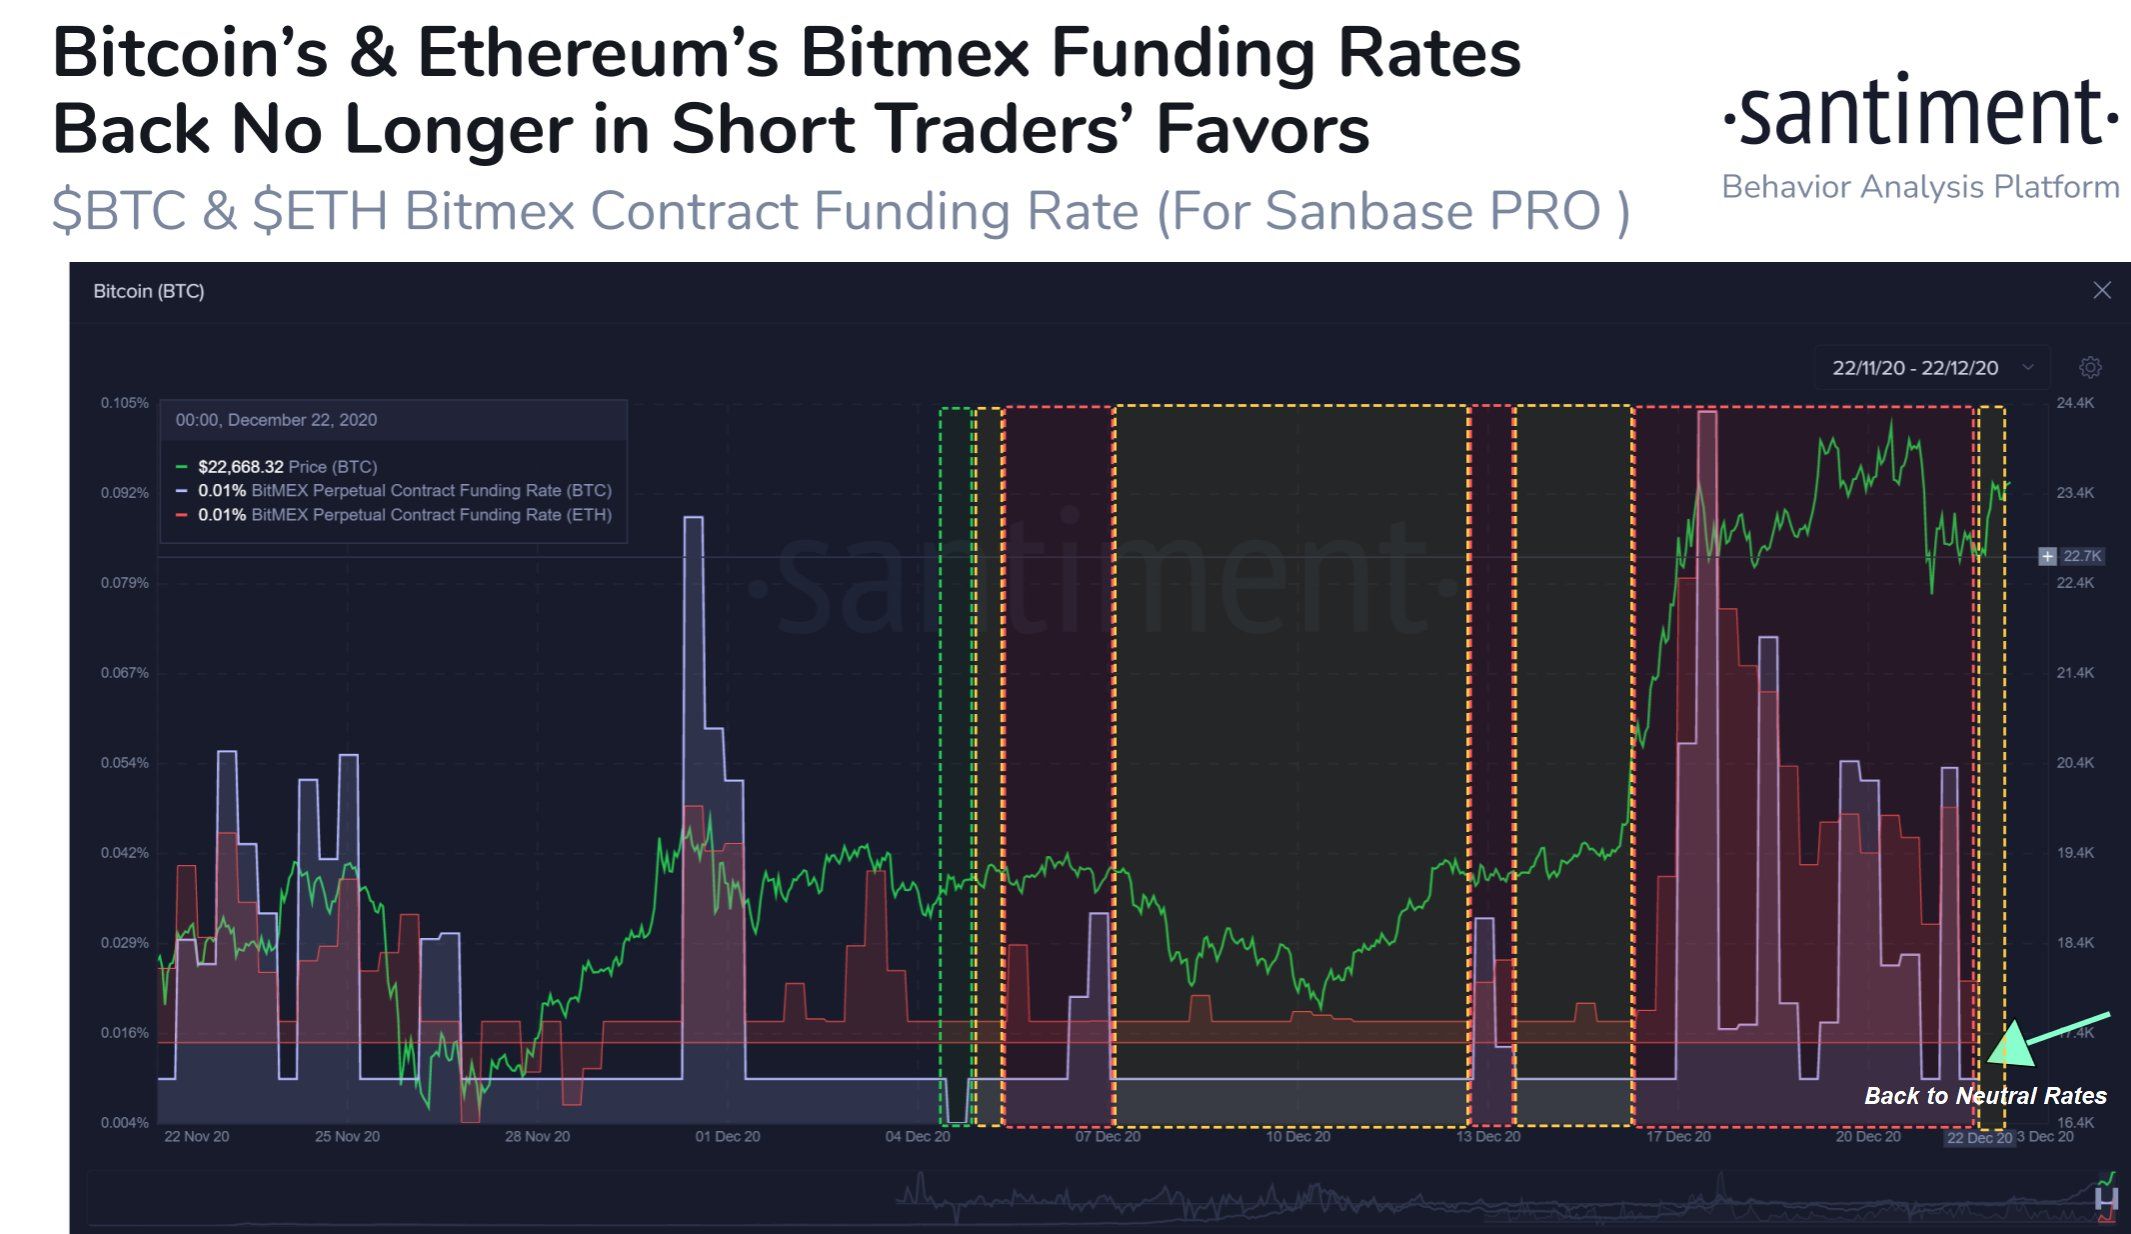 Bitcoin BitMEX funding rates.jpeg